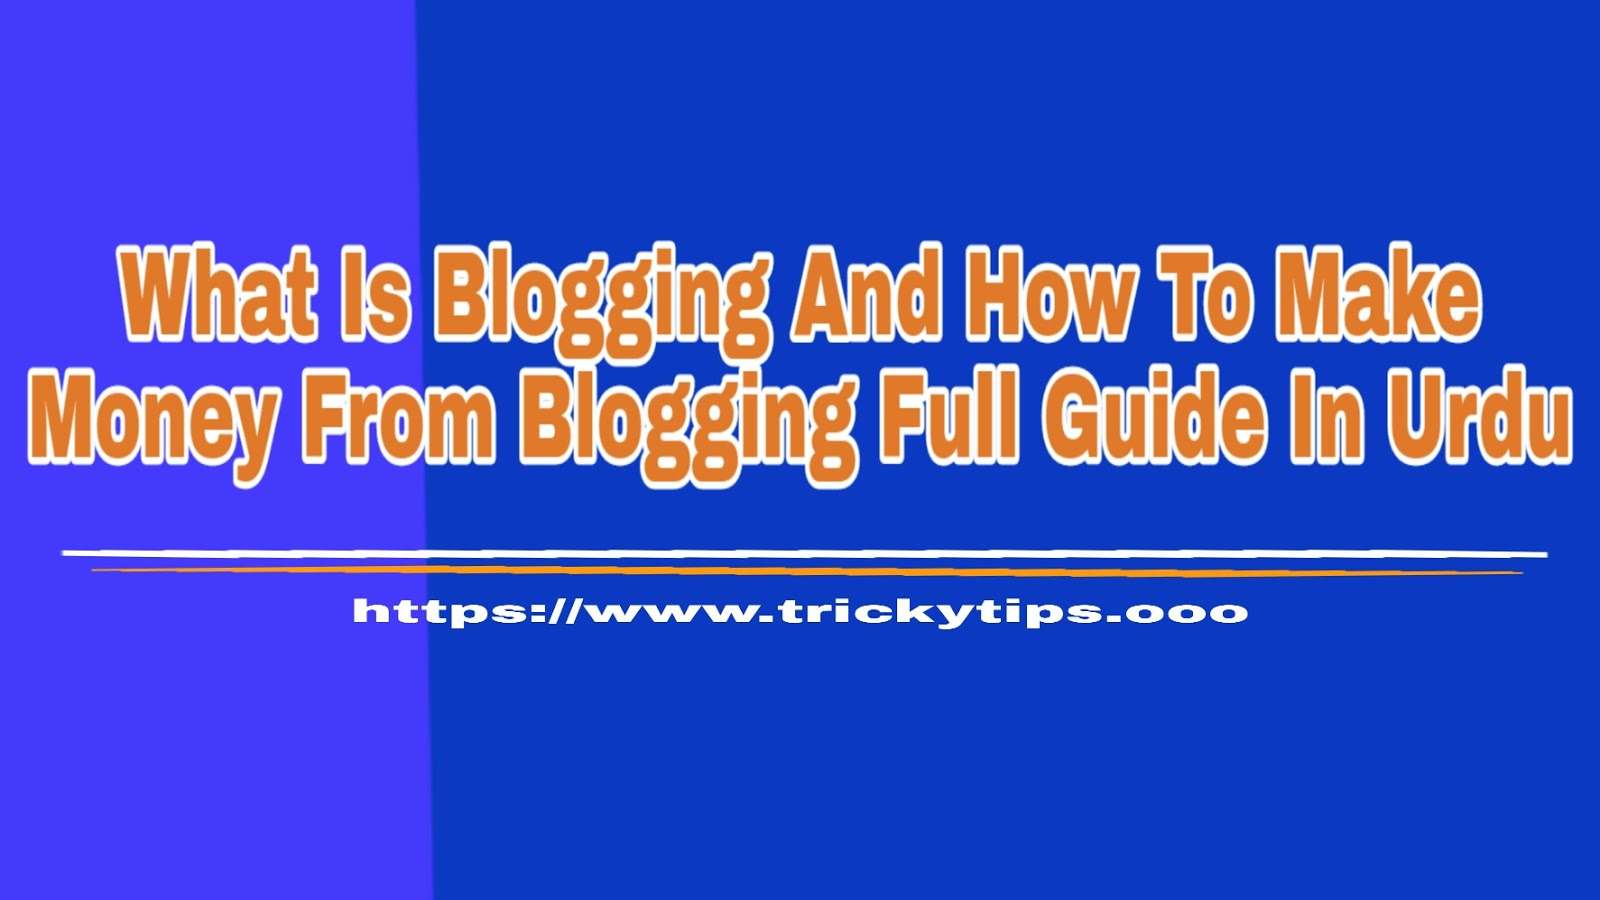 What Is Blogging And How To Make Money From Blogging Full Guide In Urdu